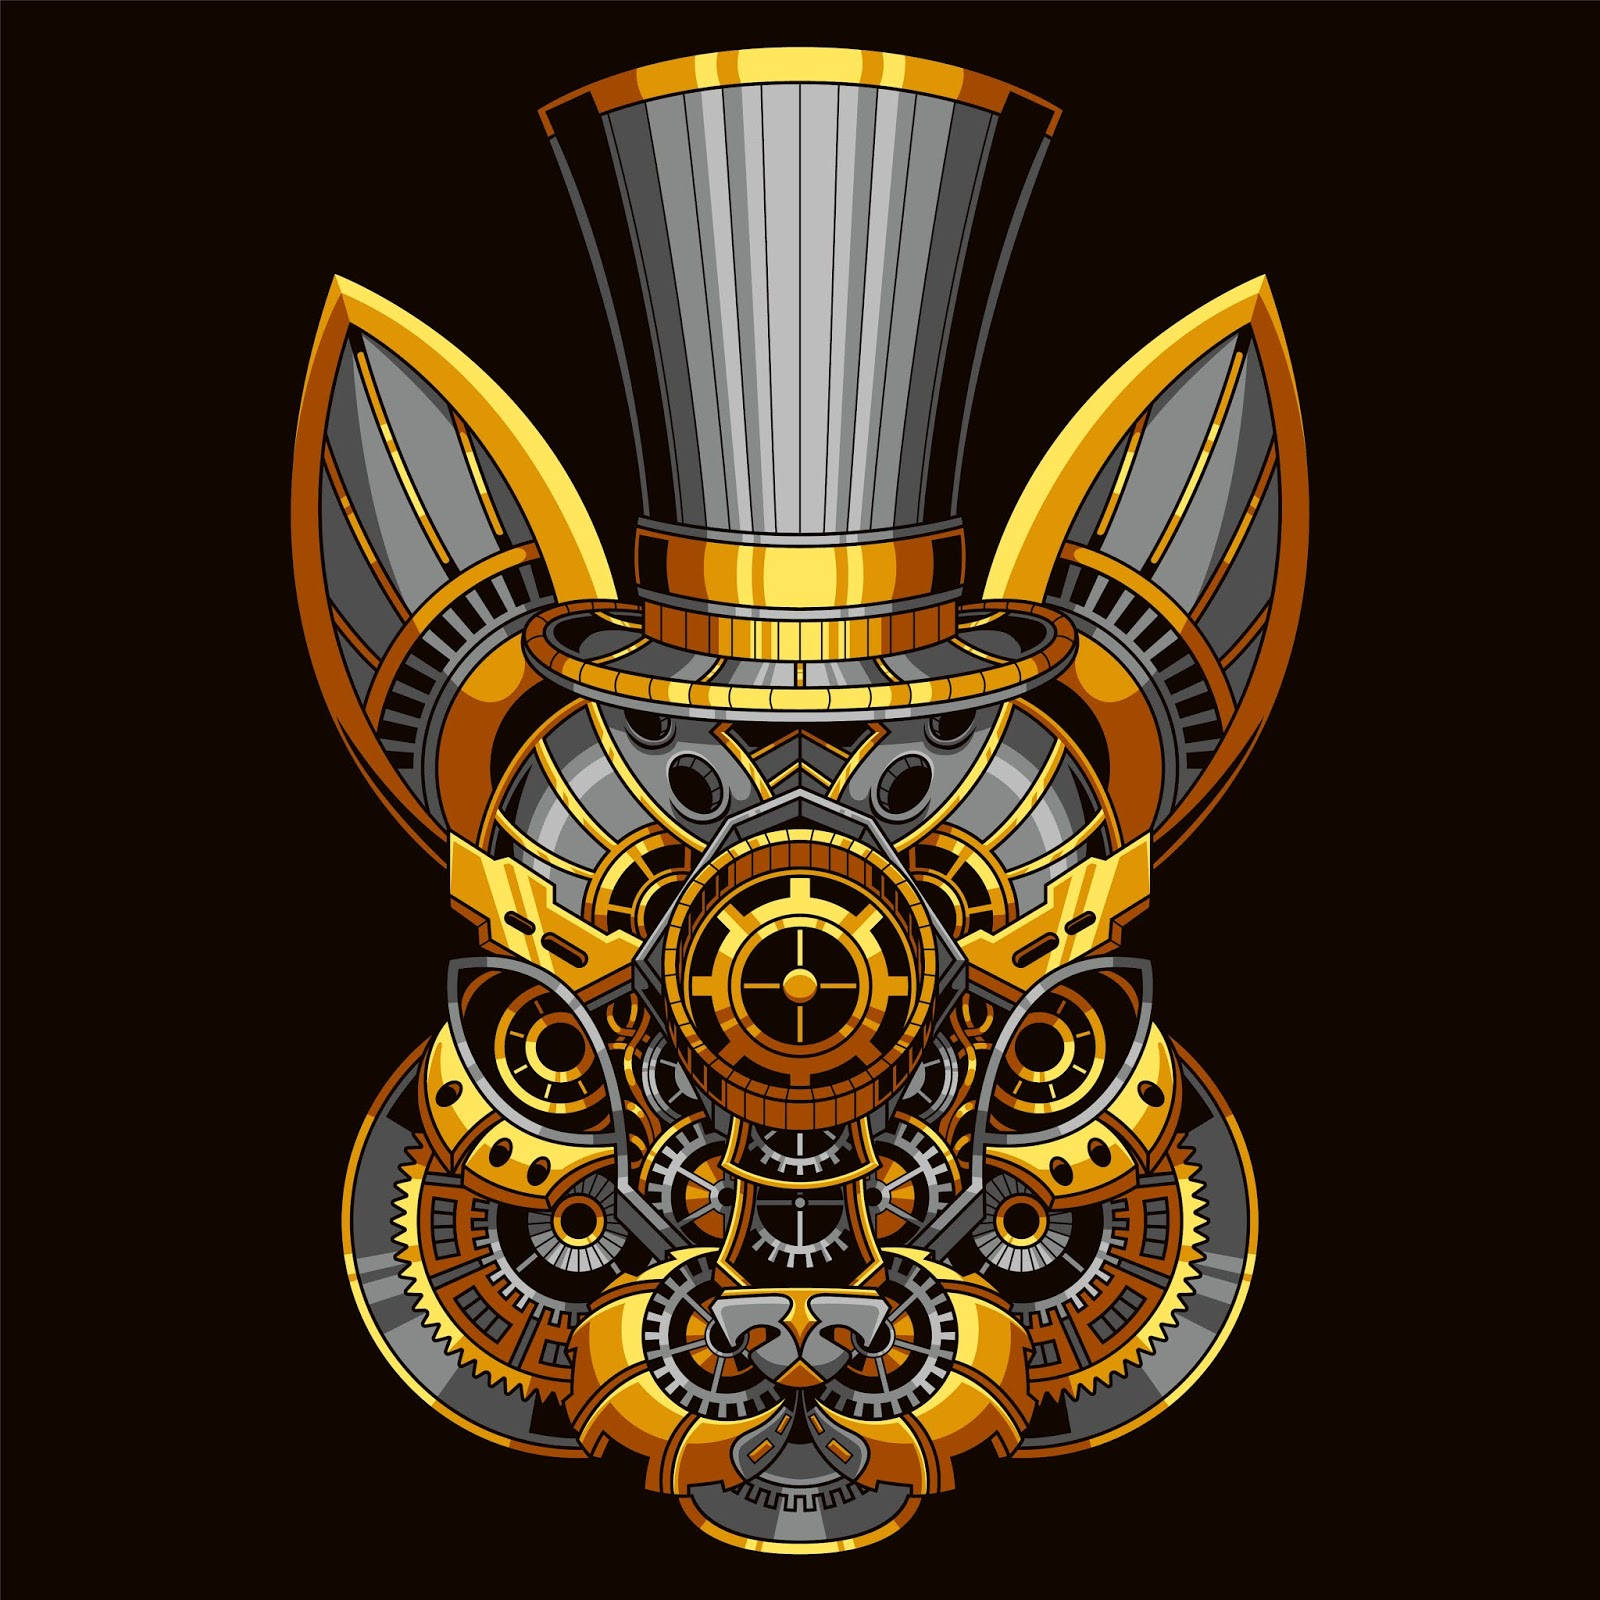 Rabbit Steampunk Illustration	 Free Download Vector CDR, AI, EPS and PNG Formats